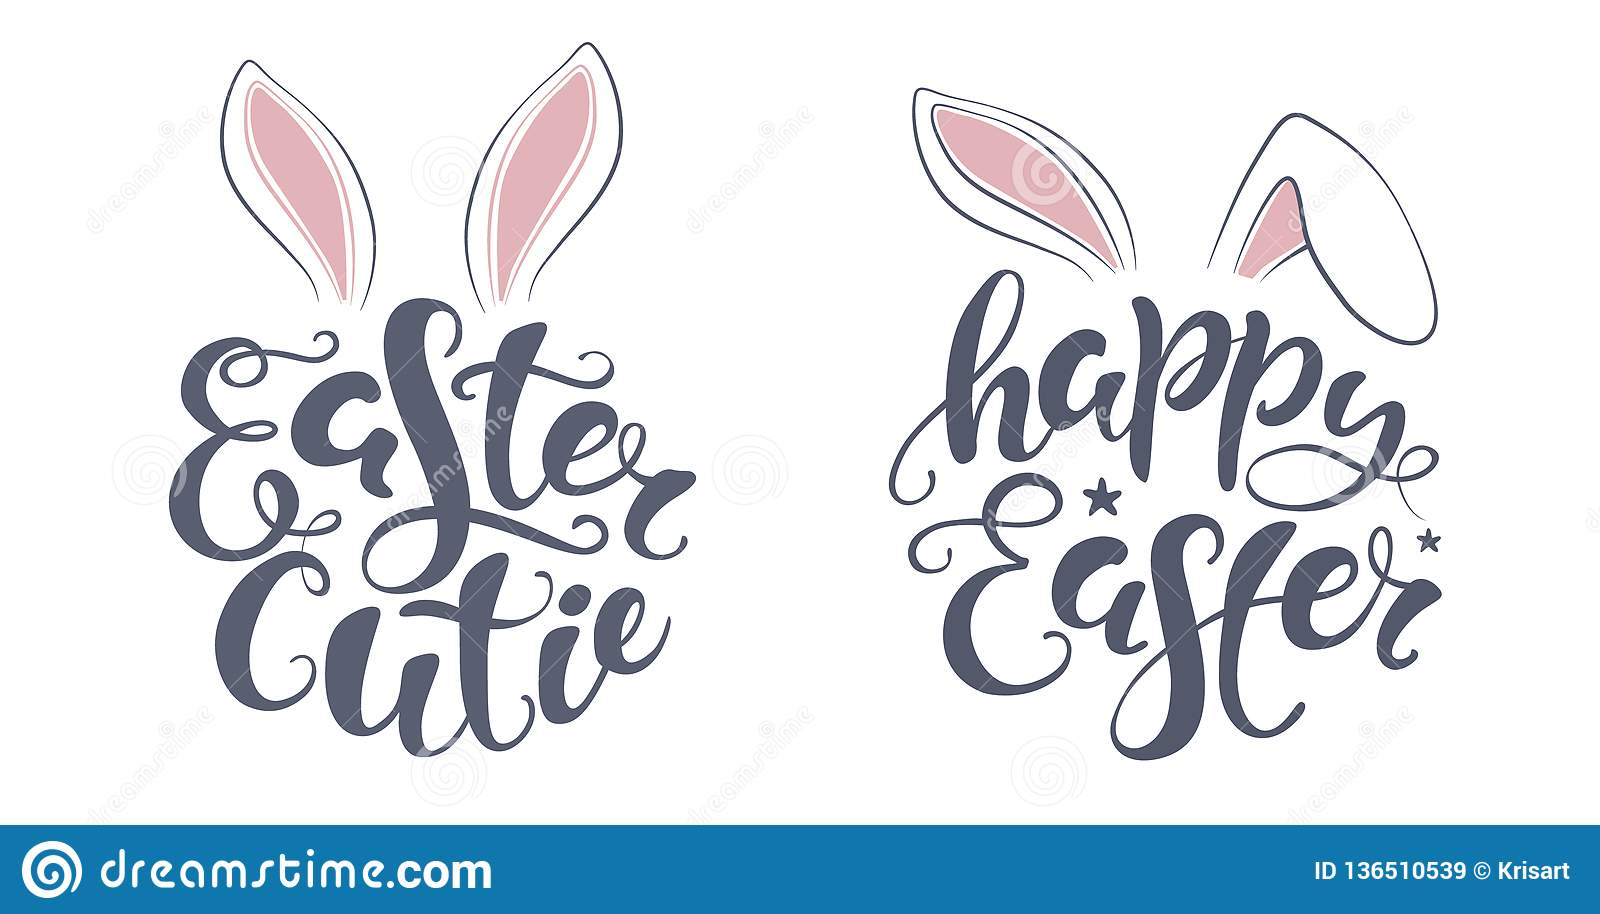 photo about Easter Banner Printable called Vector Content Easter Bunny Lettering Card. Quotation In the direction of Layout